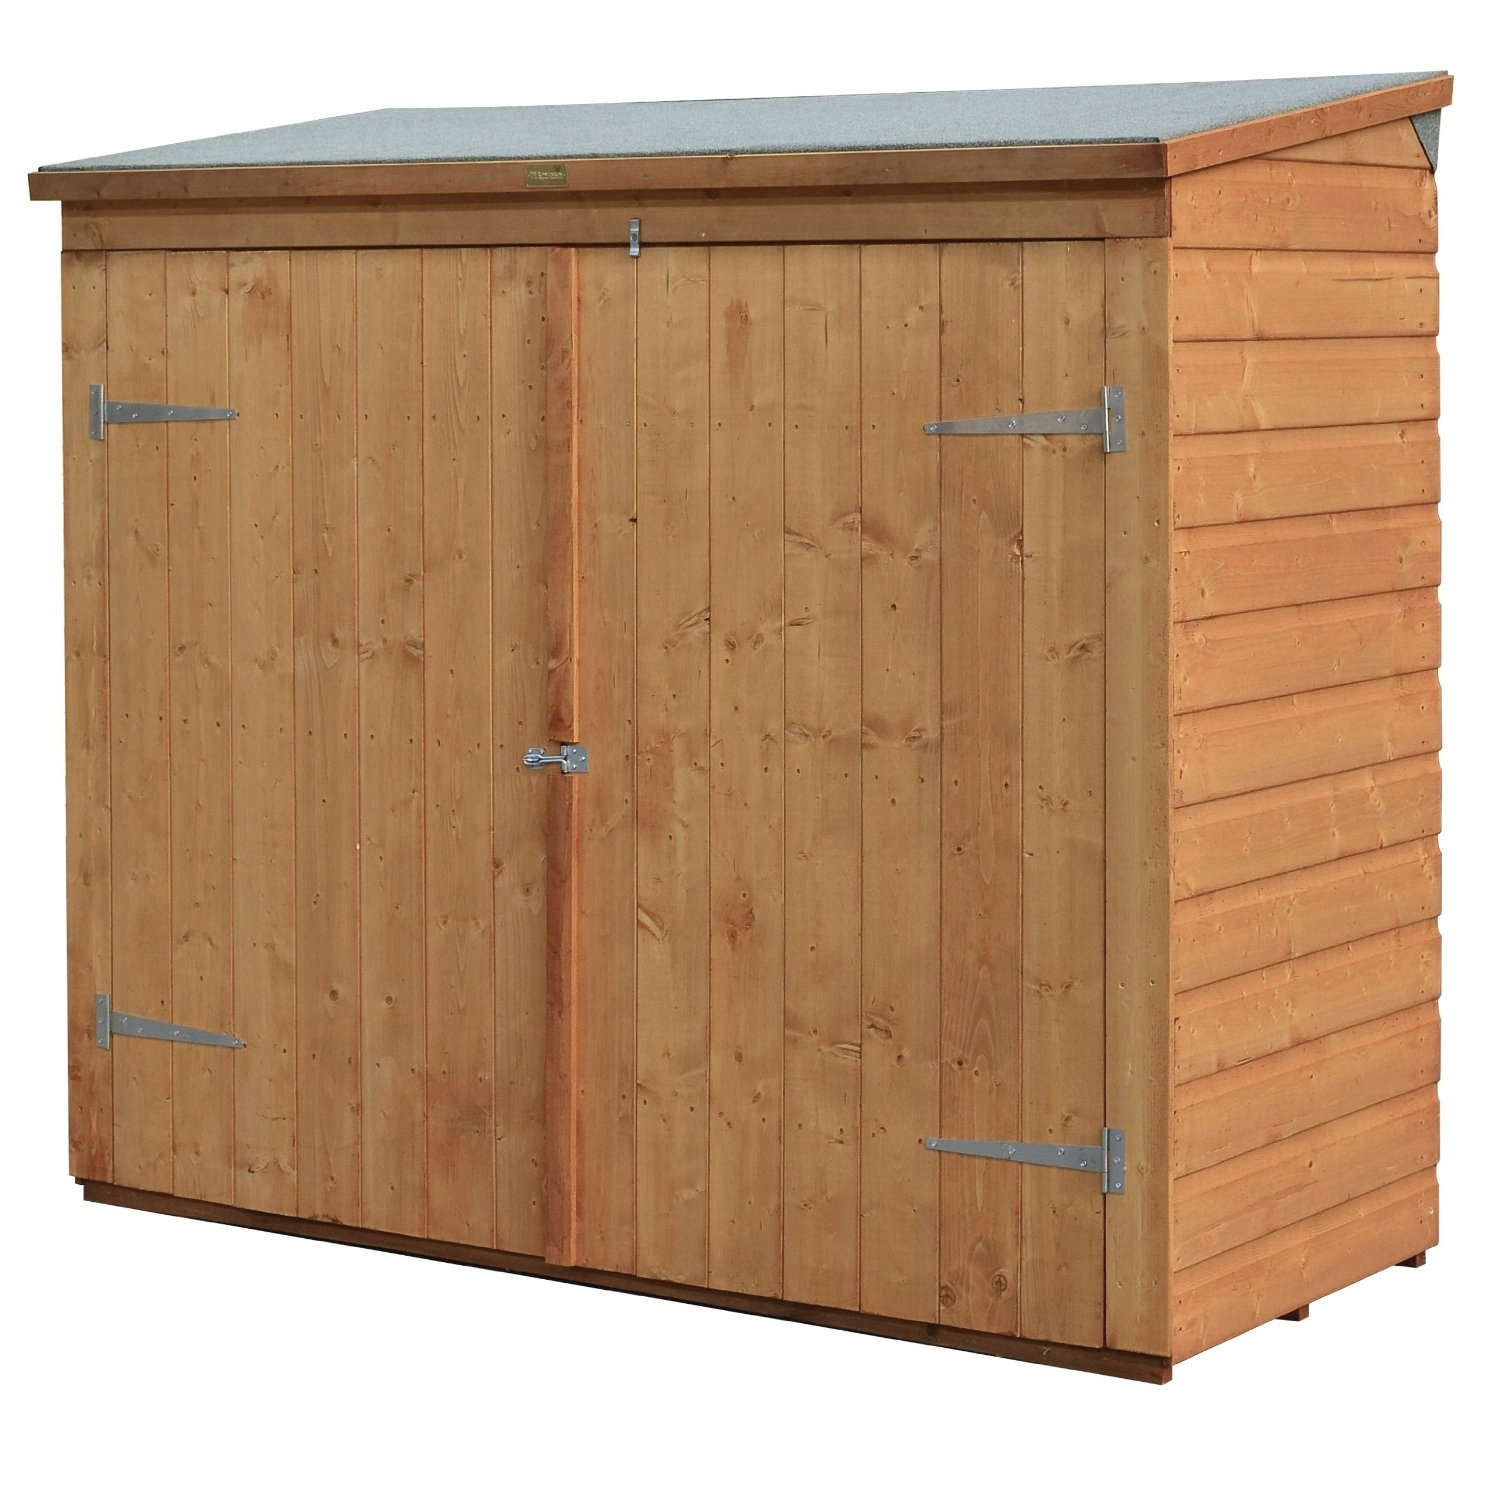 5 favorites wooden garden sheds gardenista for Wooden garden storage shed